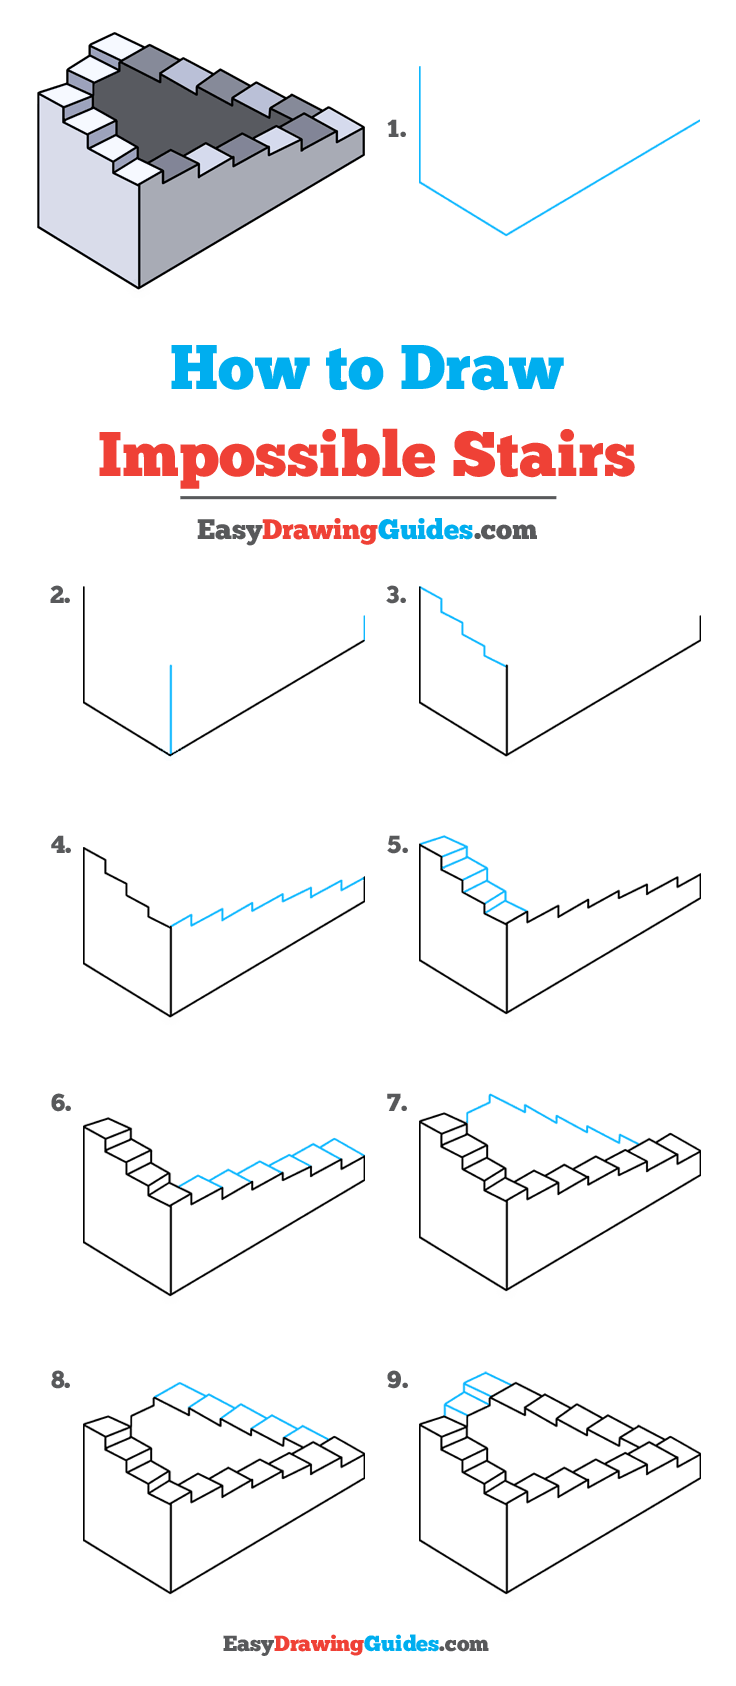 Illusions drawing stair. How to draw impossible